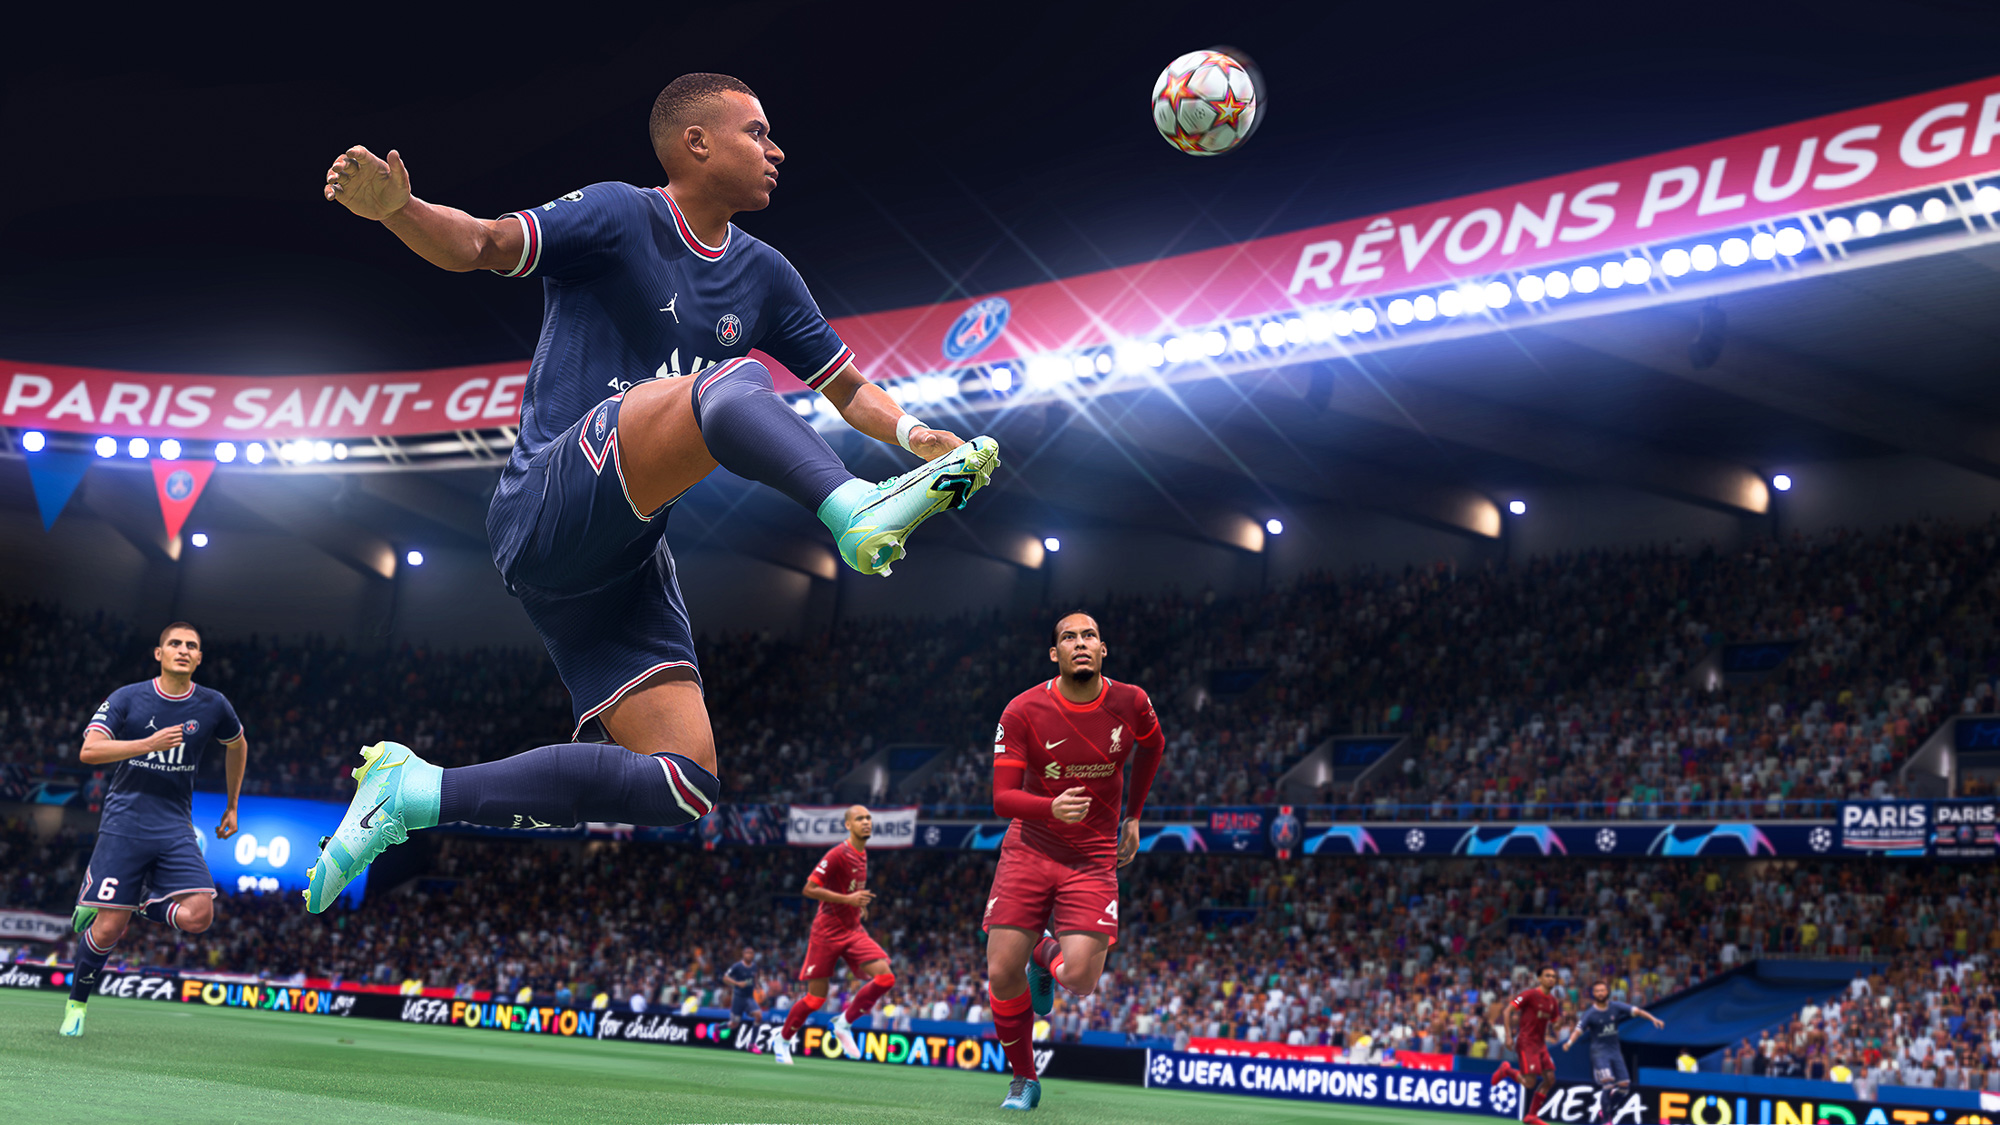 'FIFA 22's HyperMotion Technology Aims To Make The Game Feel Realistic